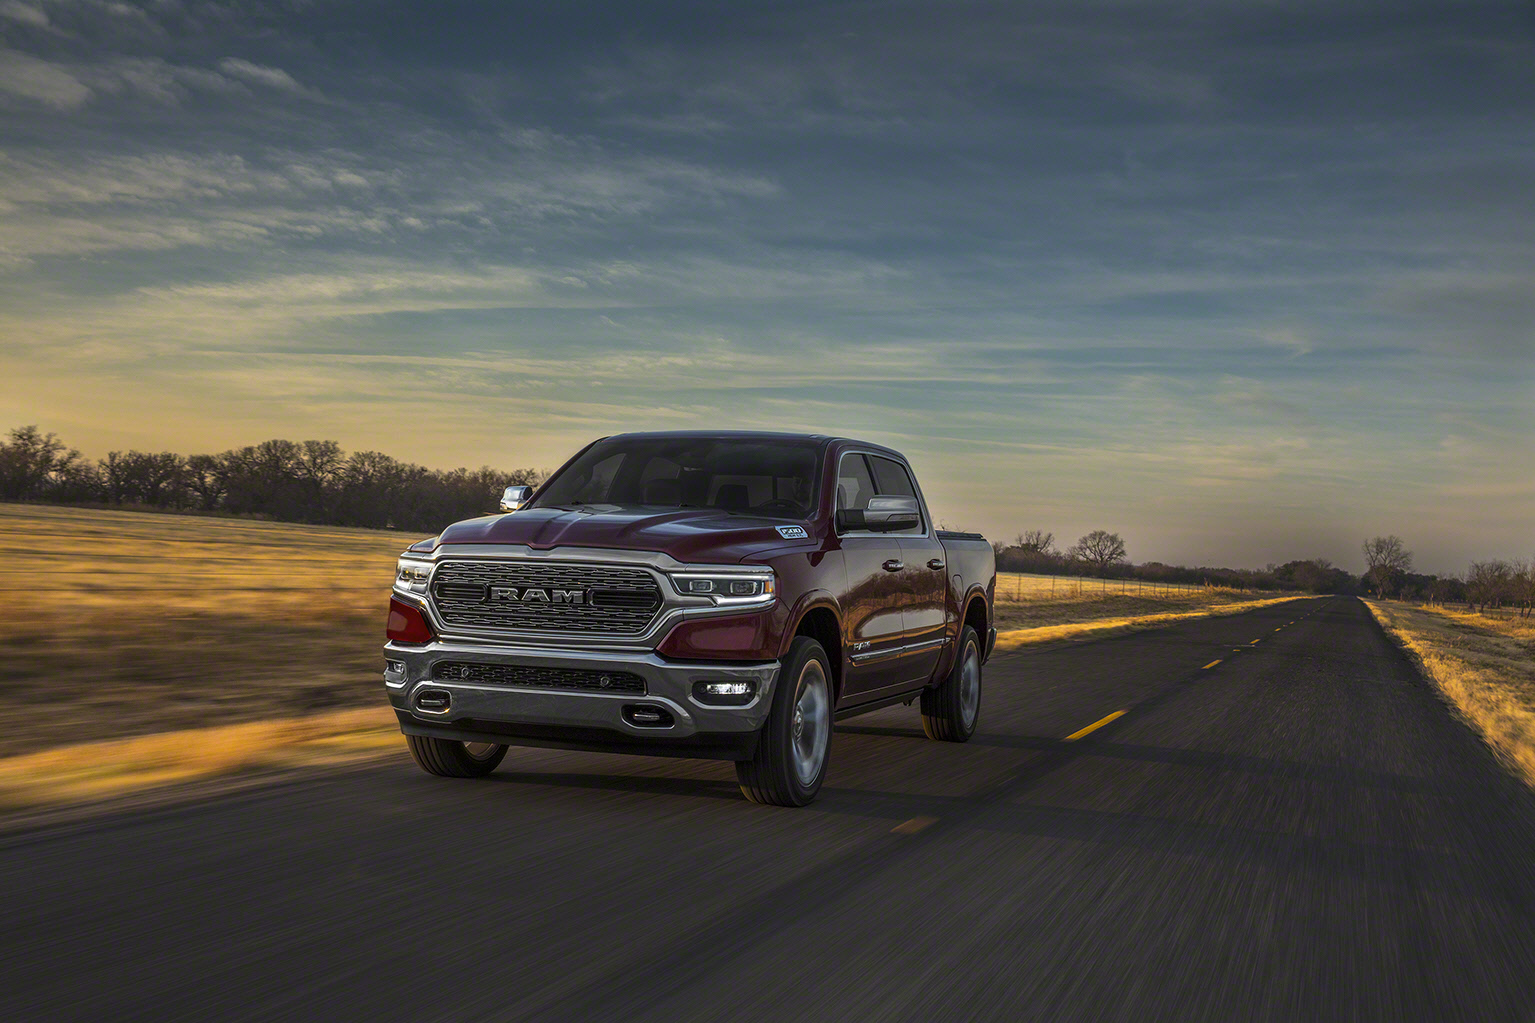 2019 Ram 1500 to start at $33,340, now shipping to dealers